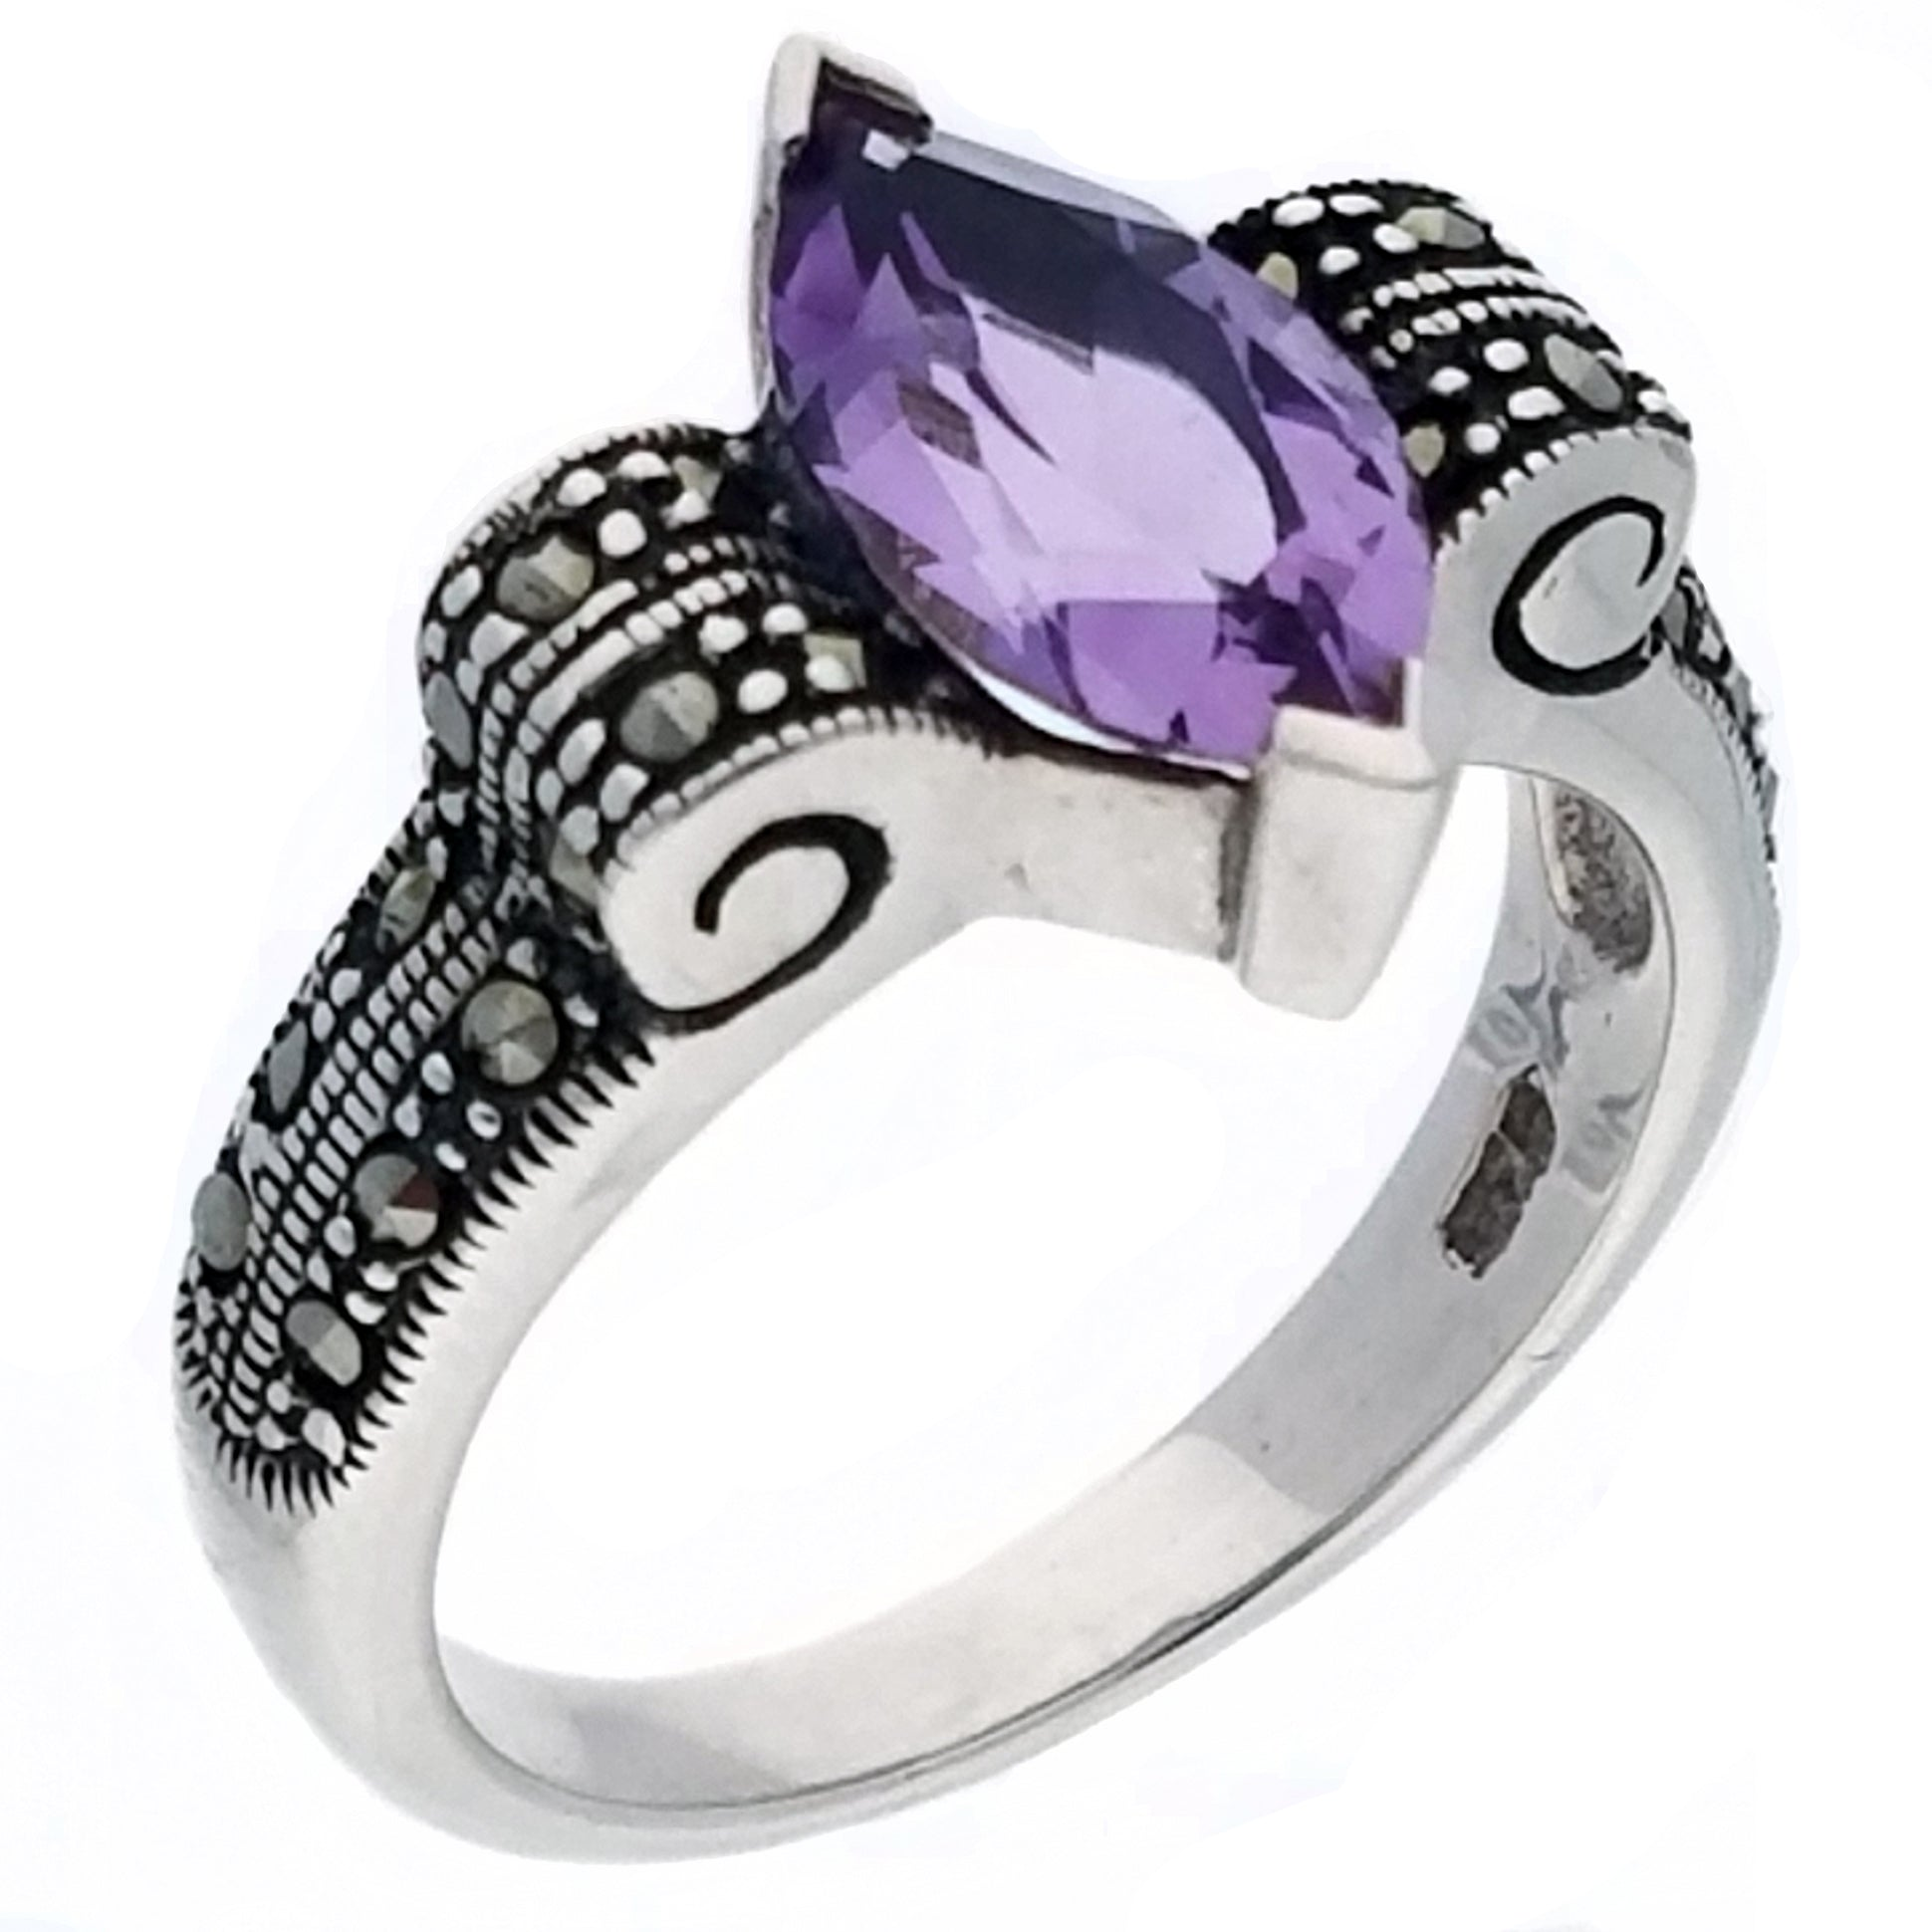 Genuine Marquise Amethyst and Marcasite Deco Swirl Sterling Silver Ring - Silver Insanity